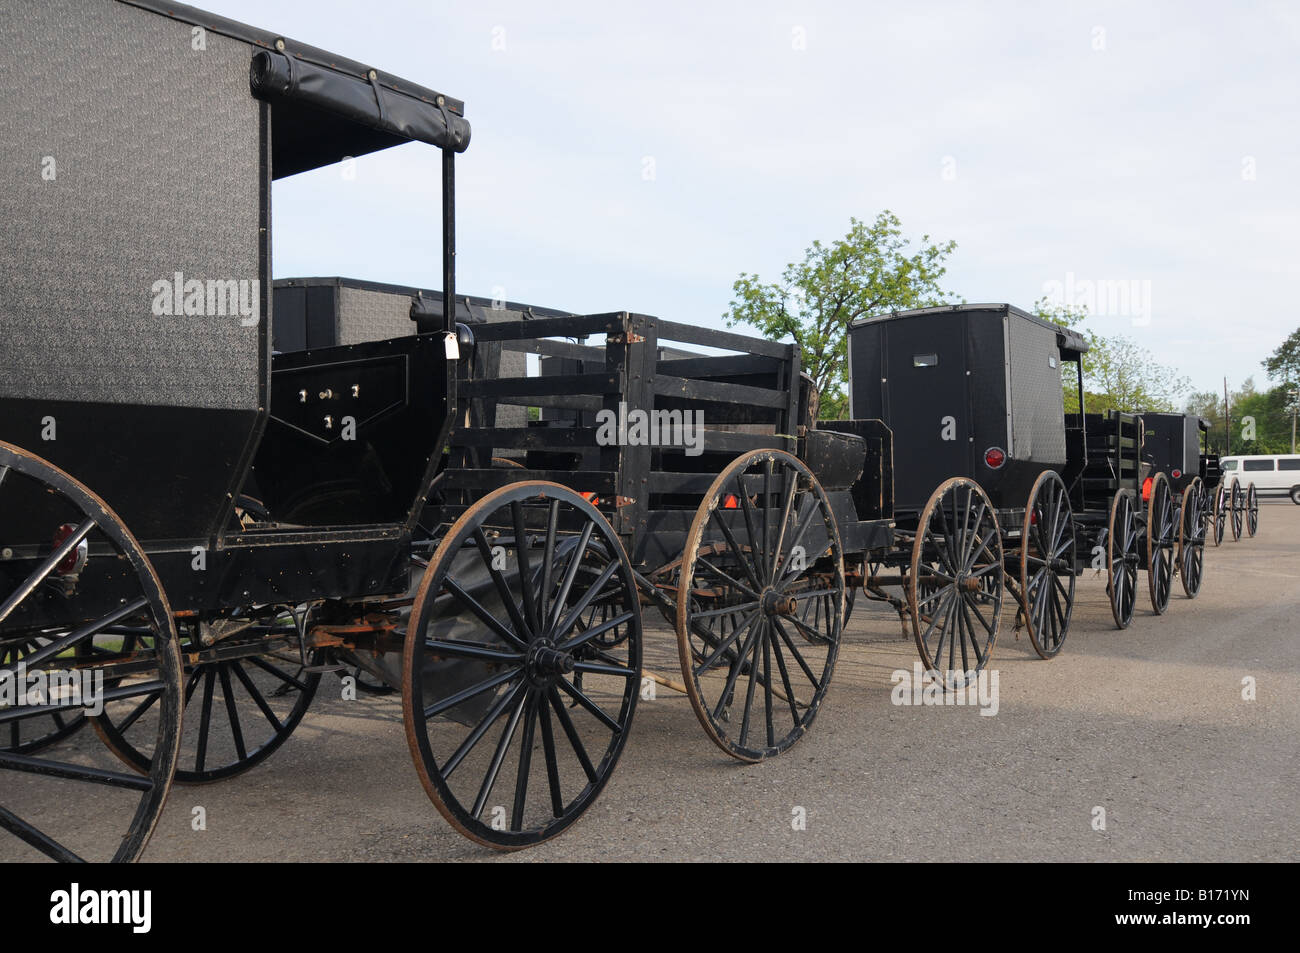 Carriage Carriages Used Stock Photos & Carriage Carriages